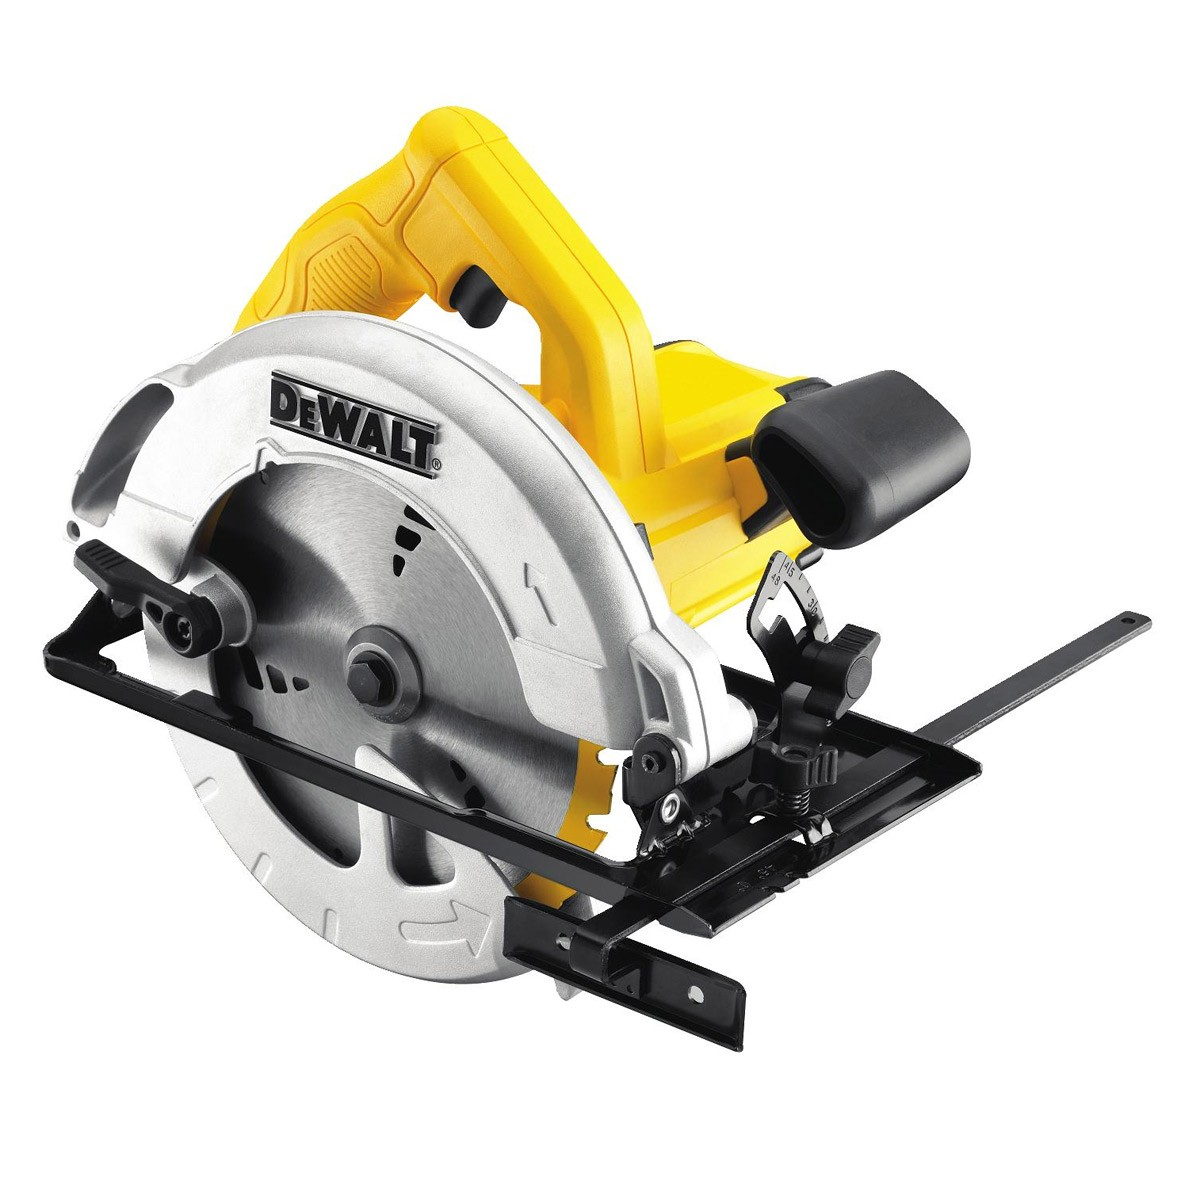 DeWalt DWE560 Compact Circular Saw with 65mm Depth of Cut